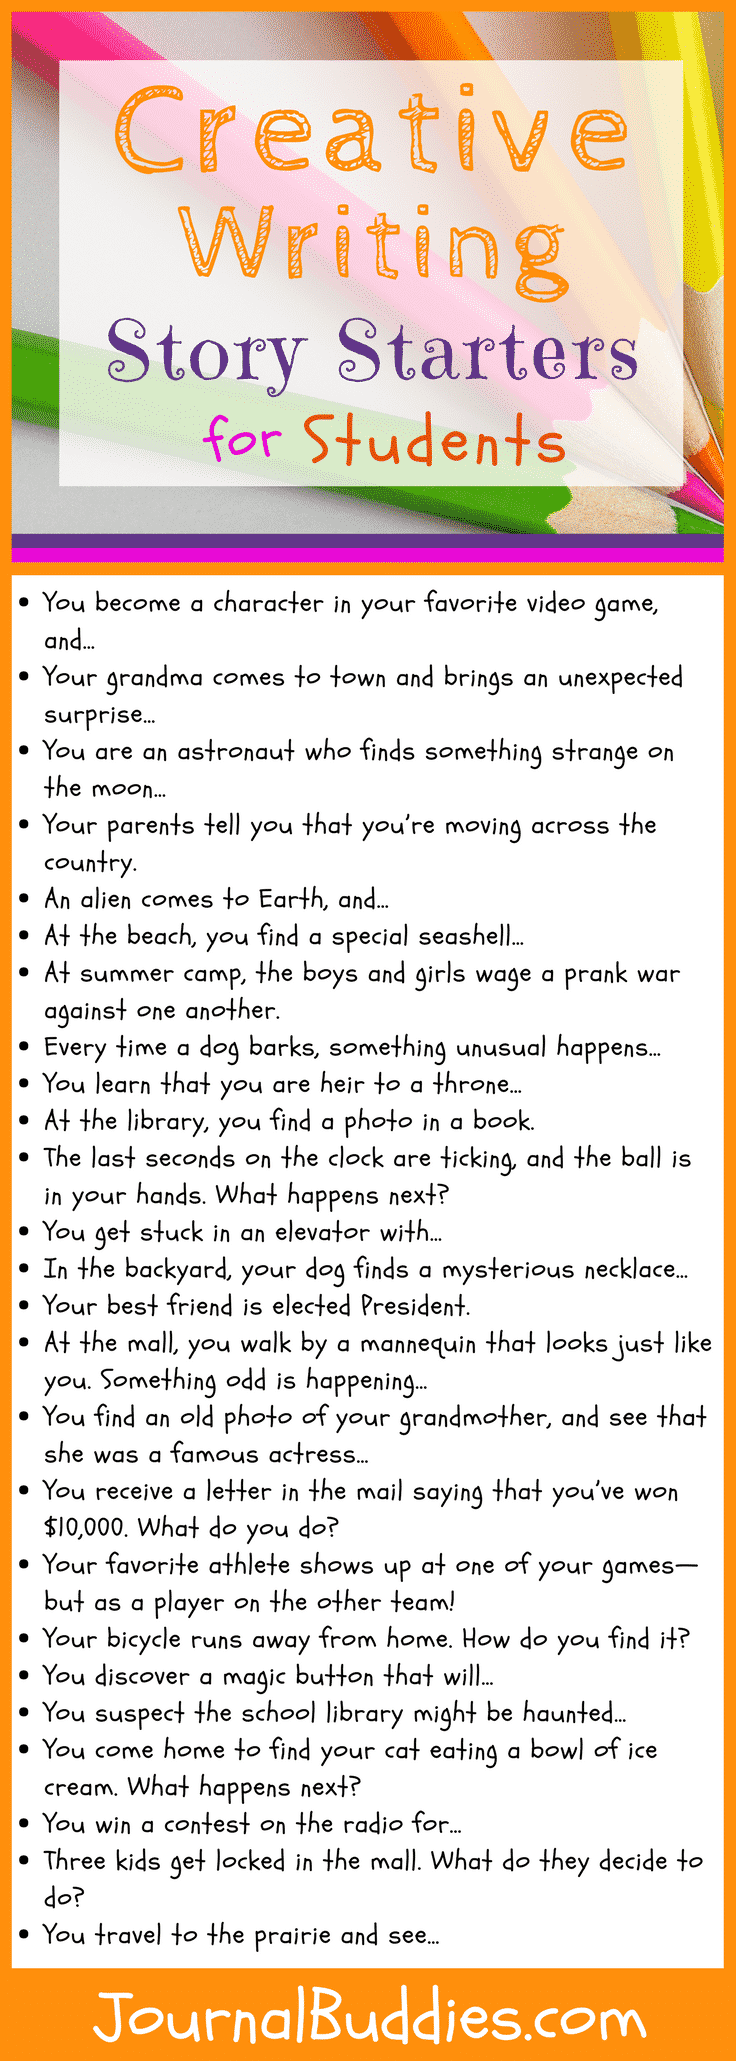 Creative Writing Story Starters For Students Creative Writing Stories Writing Prompts For Kids Writing Club [ 2061 x 736 Pixel ]